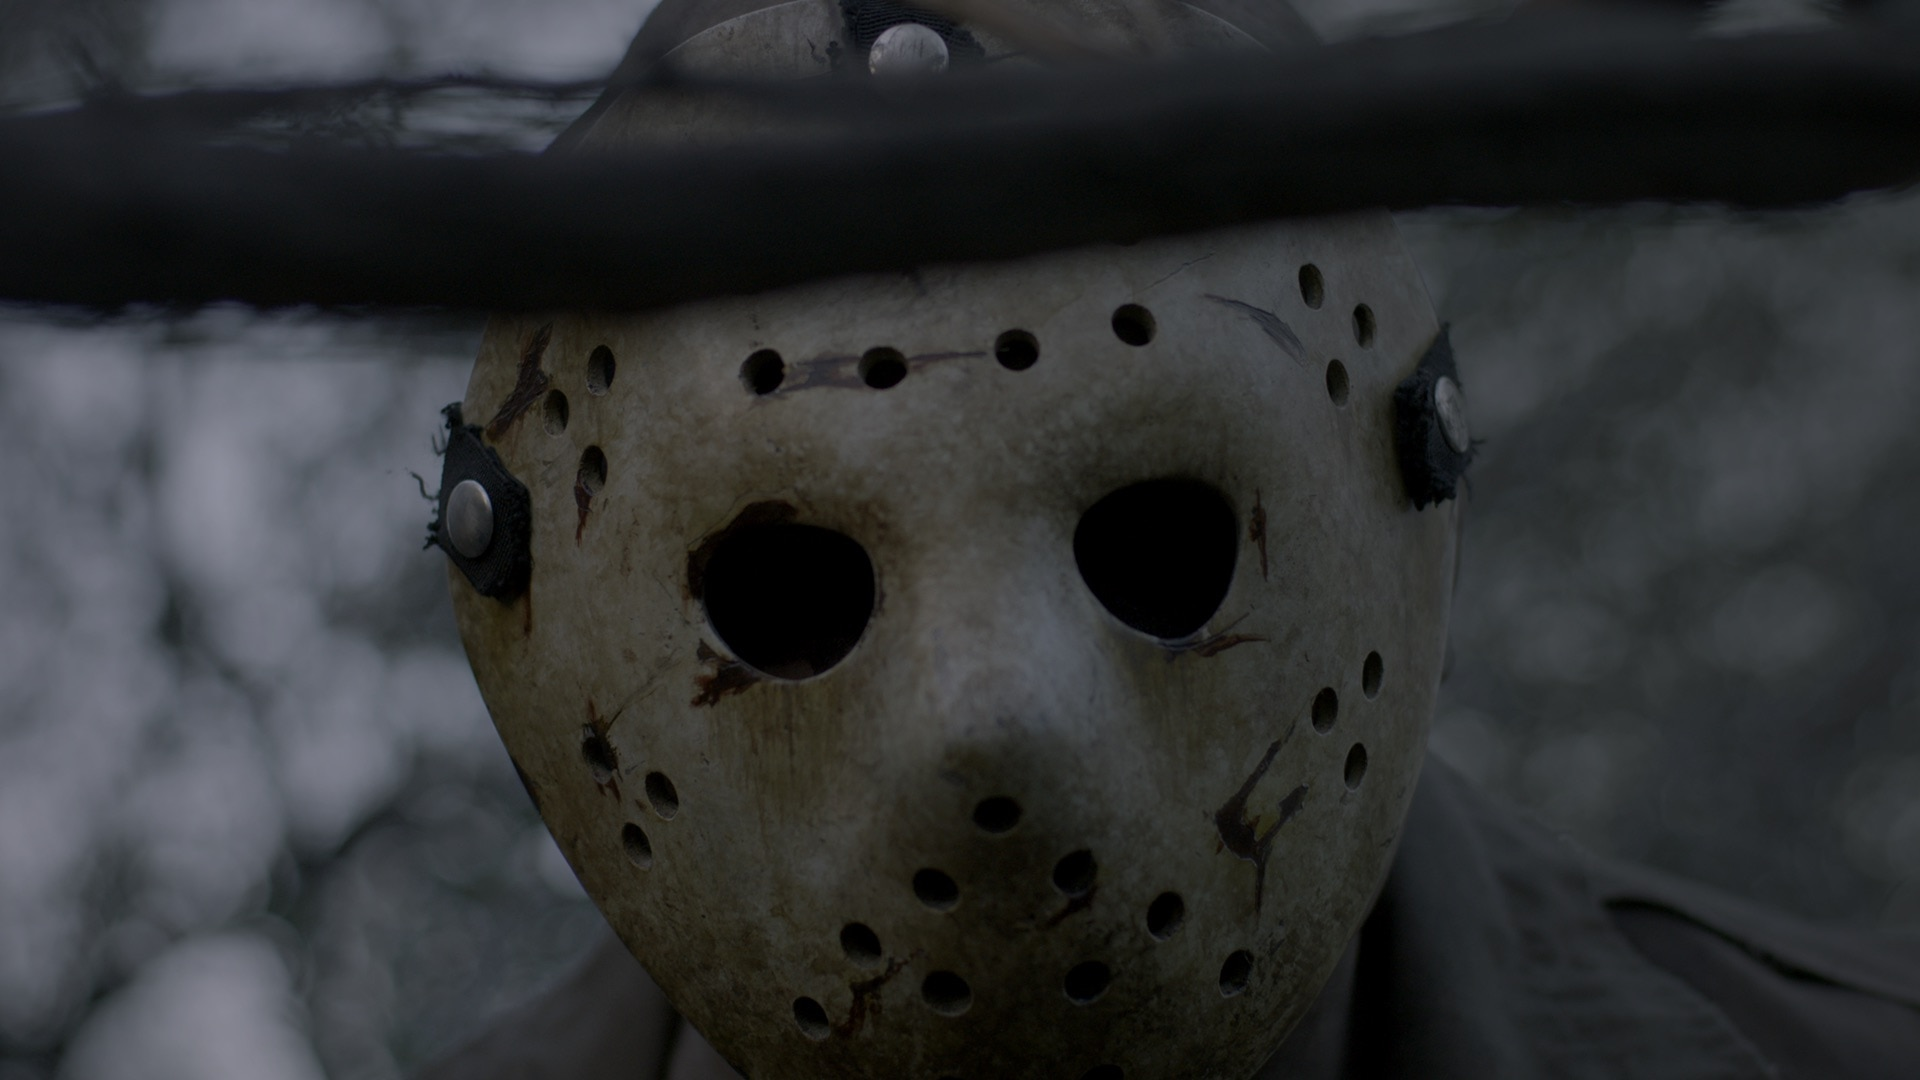 neverhikealone ths pro photo 03 - Exclusive: Friday the 13th Goes Found Footage in Fan Film Never Hike Alone